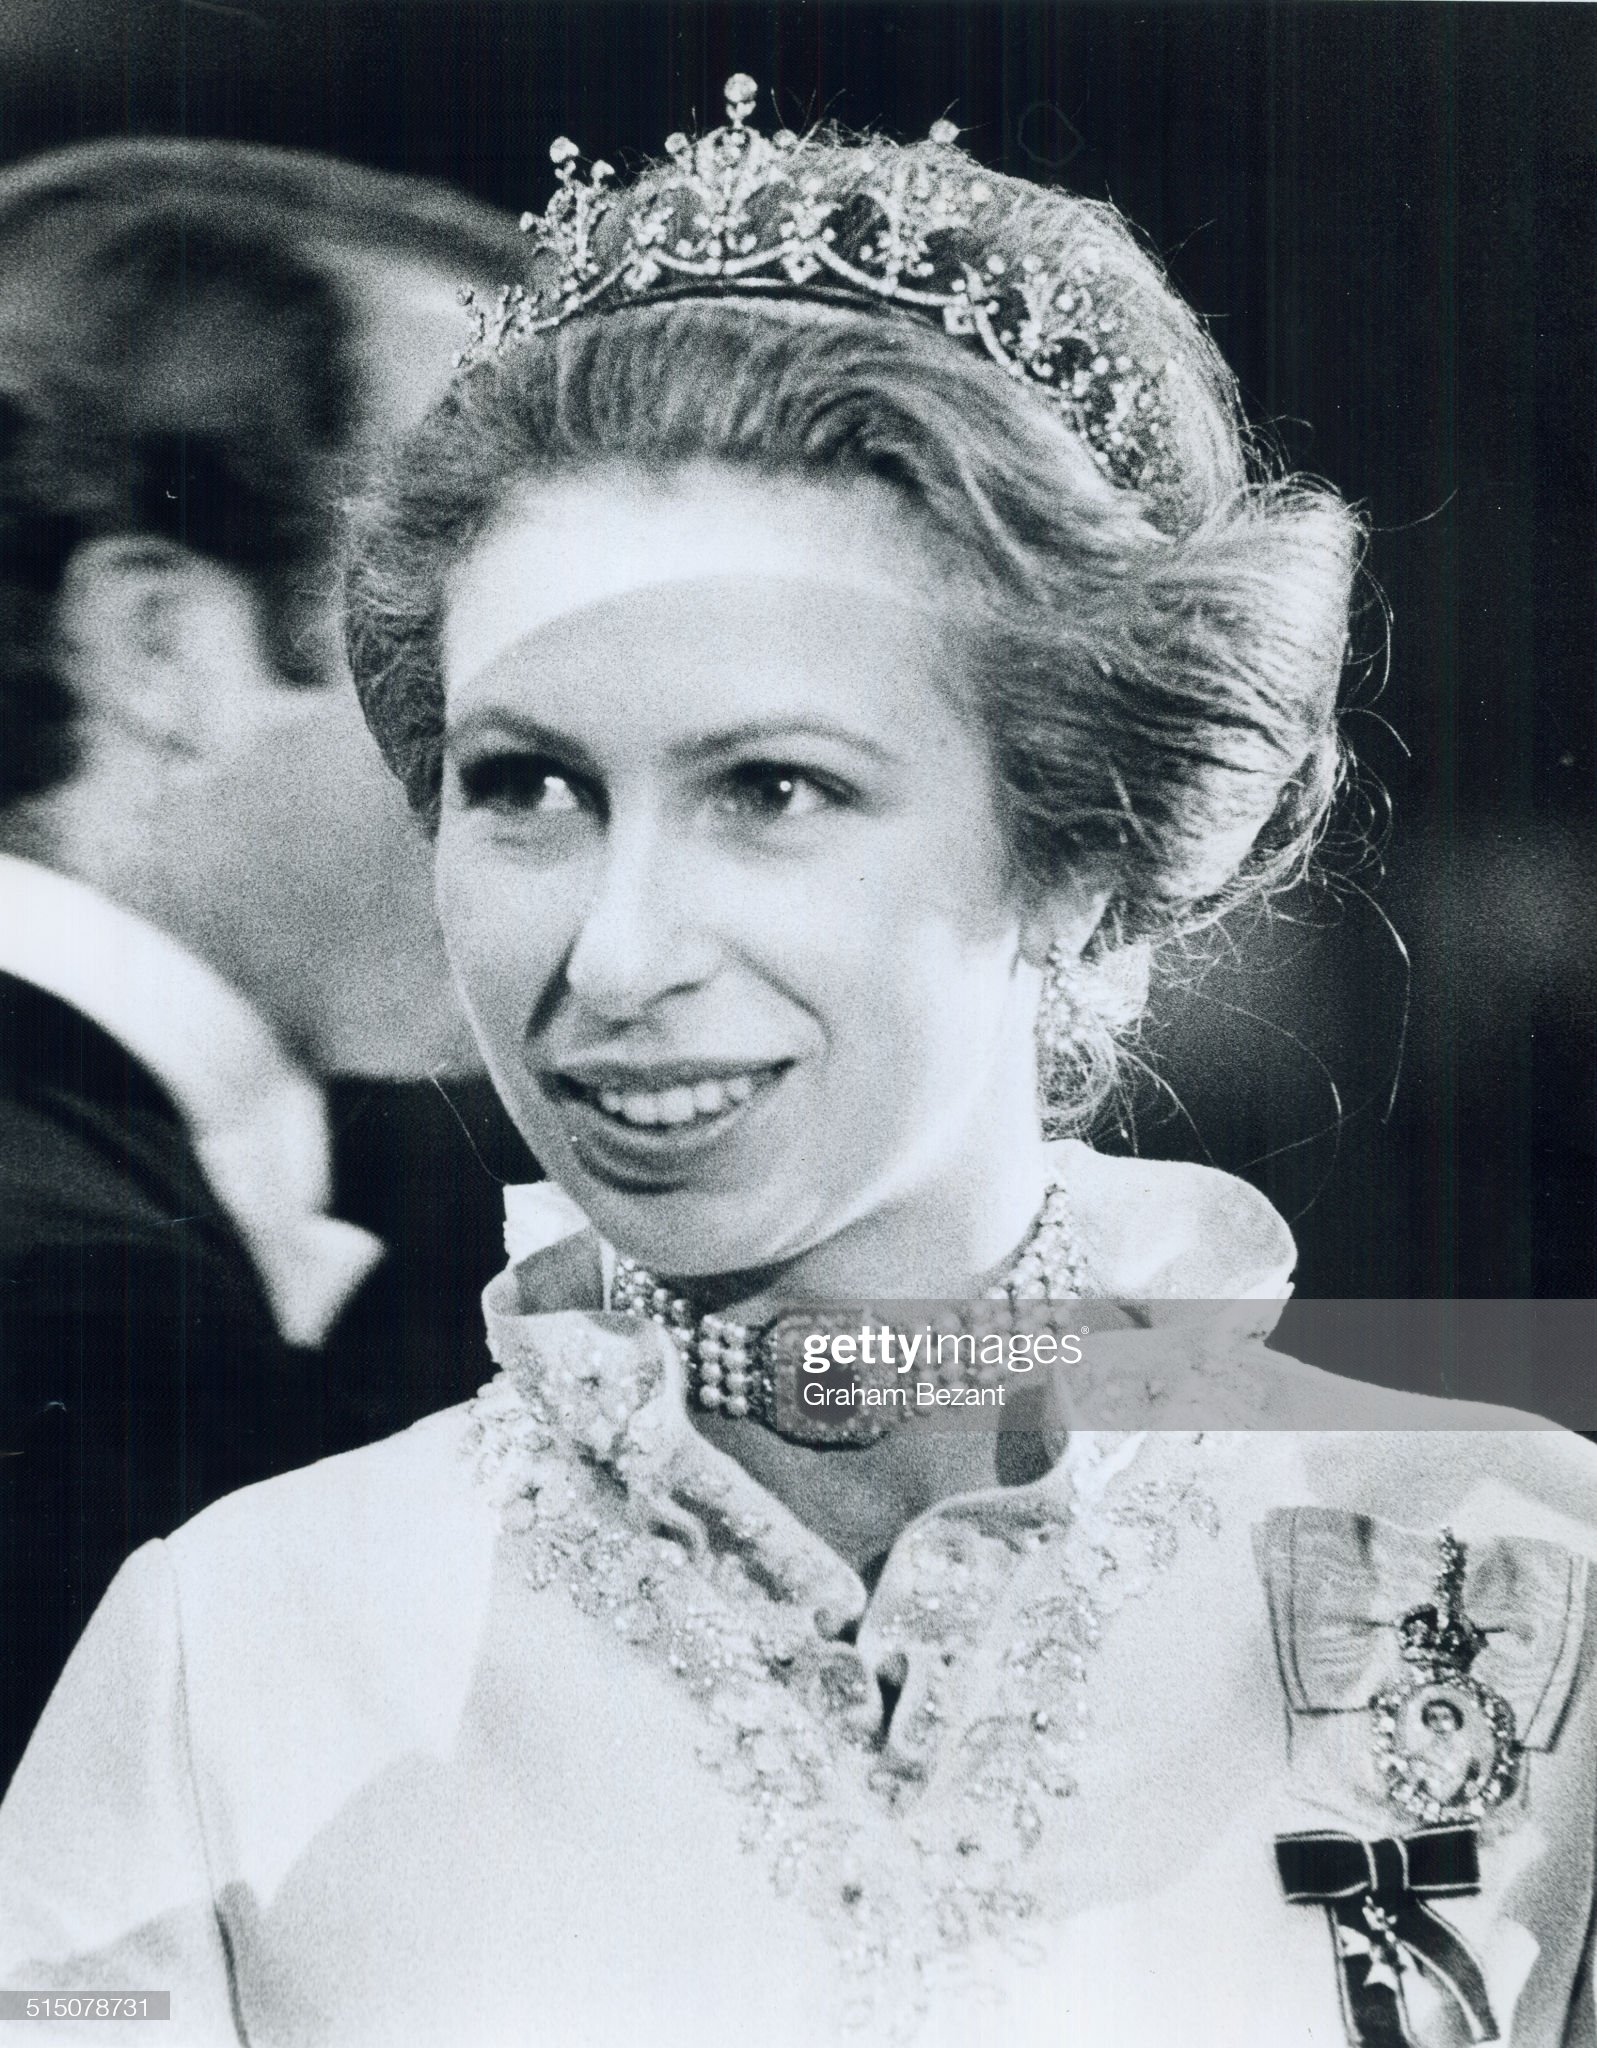 Royal Tours - Princess Anne and Mark Philips (1974)... : News Photo